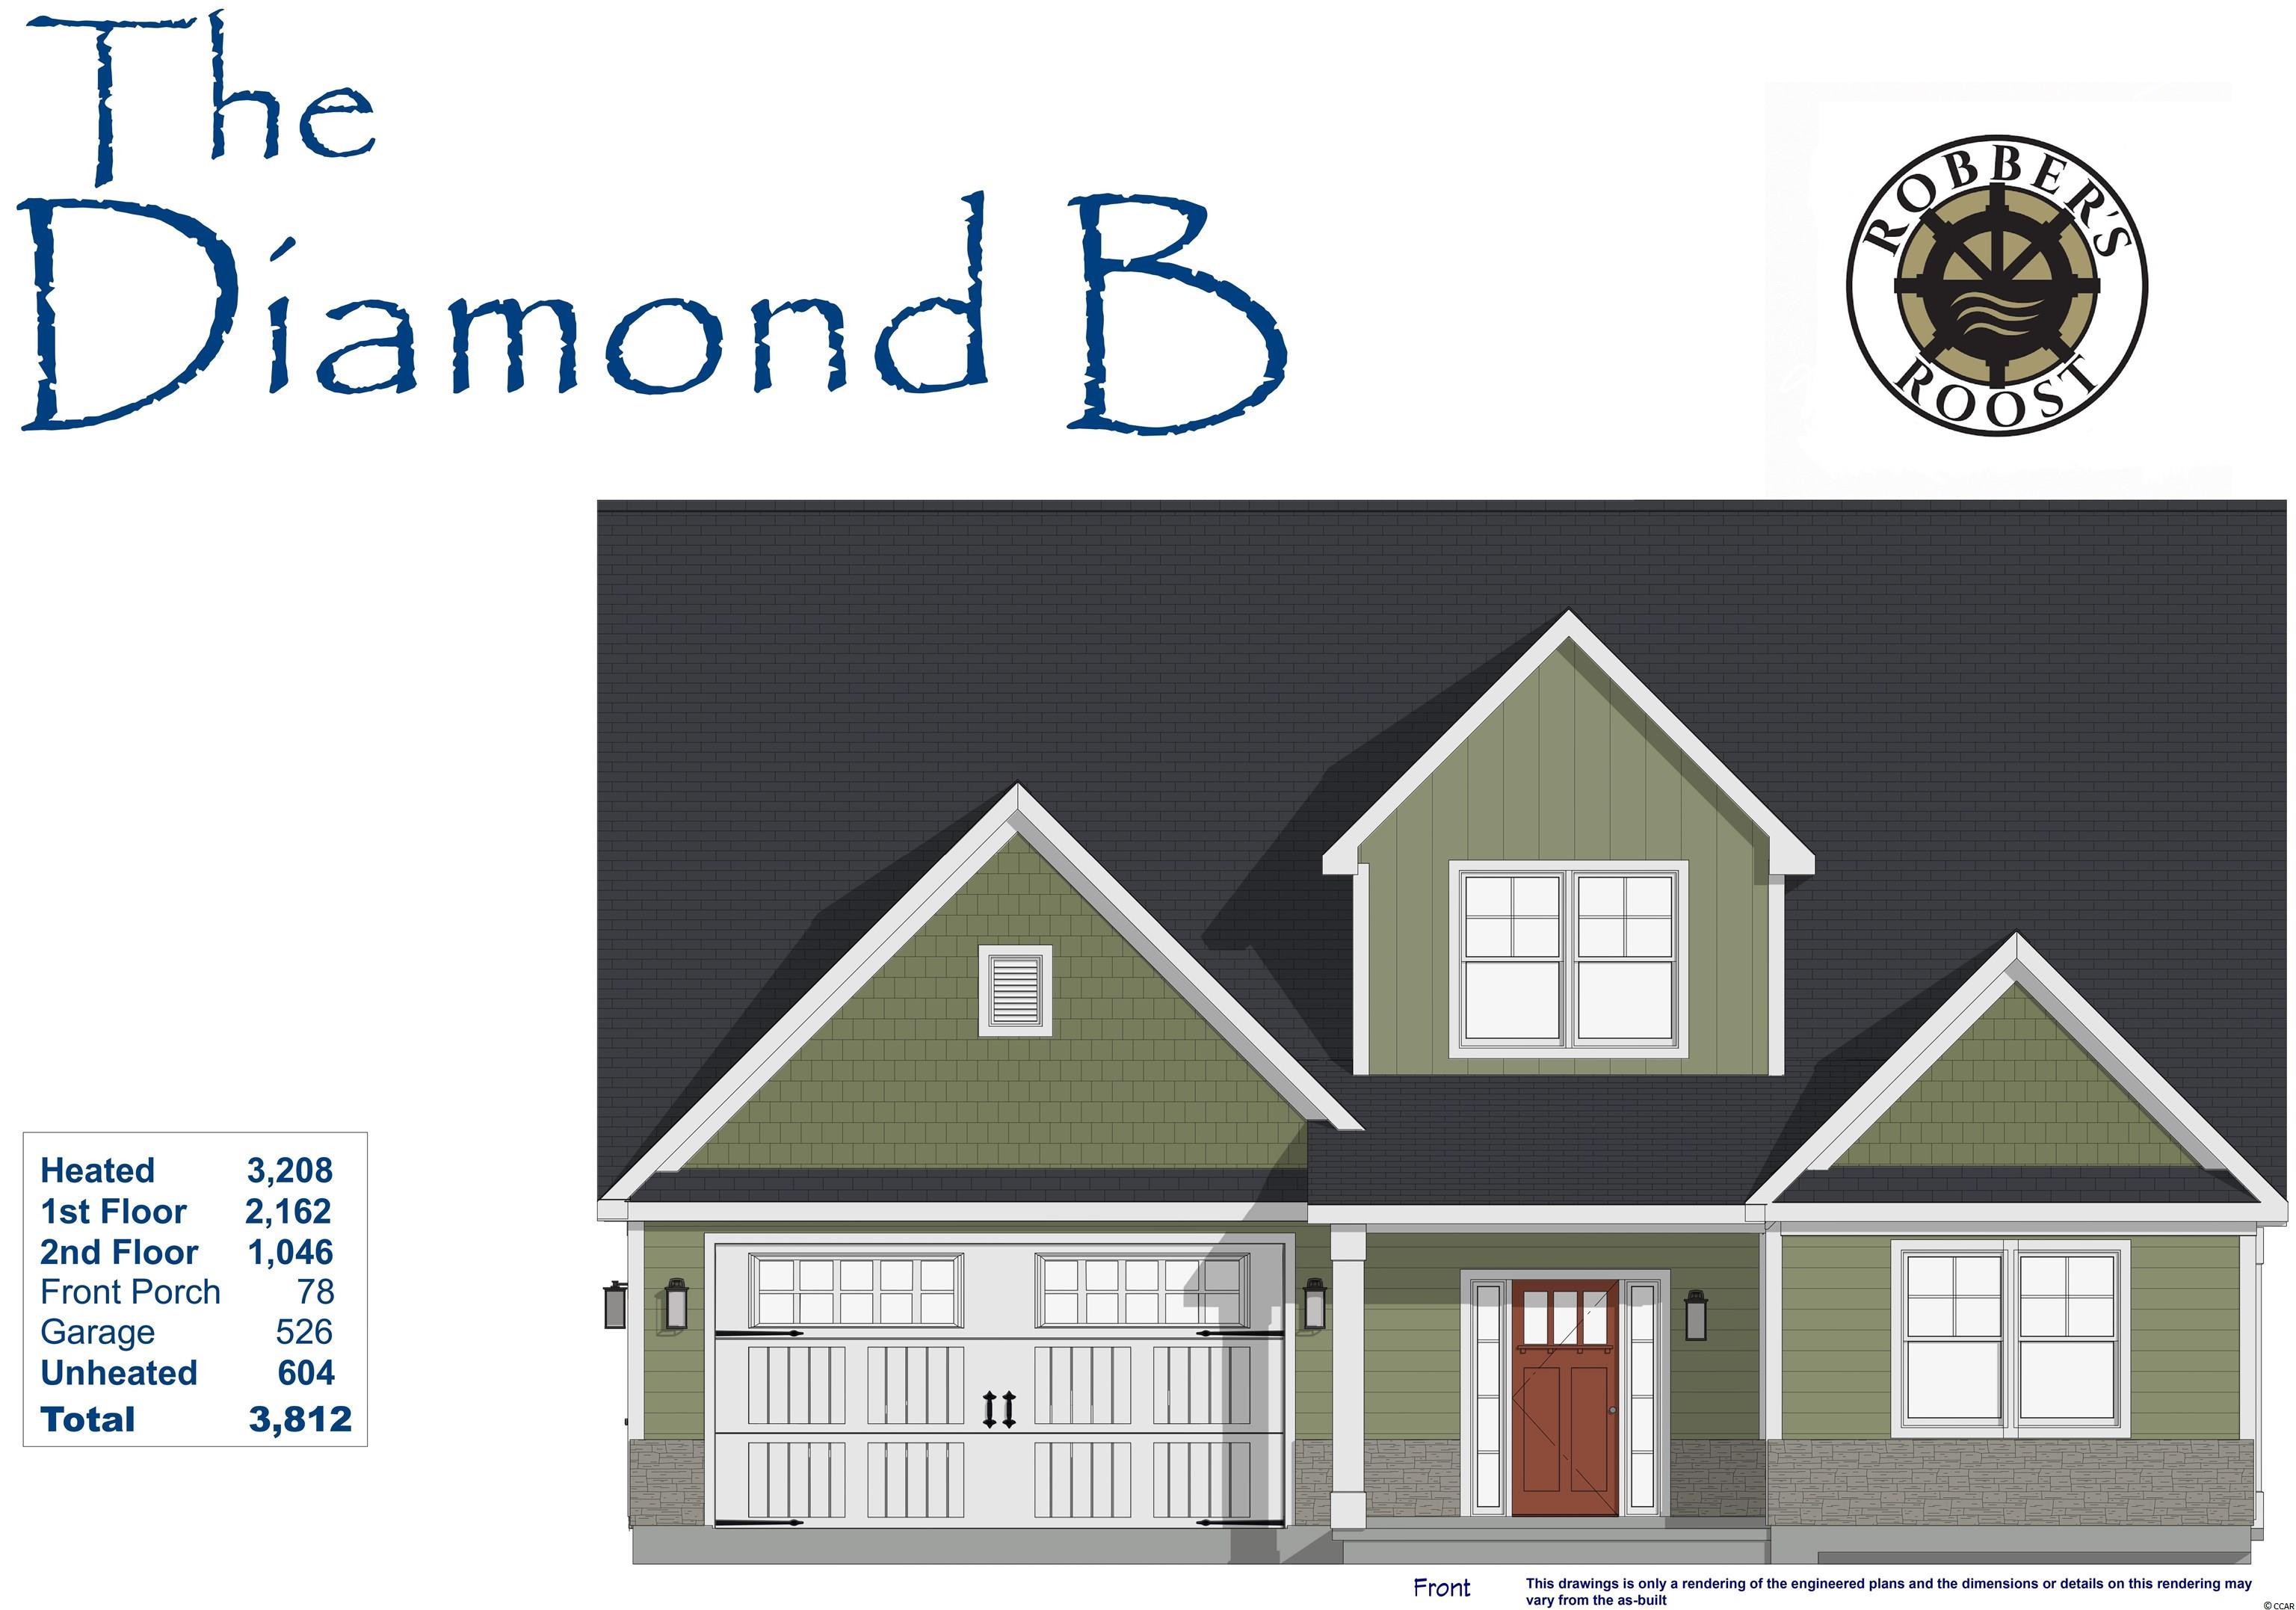 Our Jade III 2G Model has so much to offer ~ 4 Br/3ba 2-story home with 2 Car + Golf Cart Garage! The first floor boasts a huge living room,  kitchen with free standing gas convection range, over-the-range sensor microwave, energy star dishwasher, granite countertops, garbage disposal, pantry & large dining area. Fantastic Master Suite with a large walk in closet & bathroom with walk-in shower and double sinks as well as 2 other bedrooms, a full bath and a laundry room.  Second floor has a large bedroom, a playroom, a full bath & storage space. Energy savings features include Low E windows, 14 Sear HVAC, Digital WiFi Programmable Thermostats, Tankless Gas Hot Water Heater & 200 Amp electrical service, security system with keyless entry.  Too much to mention so come see for yourself! From the time you step onto the quaint from porch & open the front door you'll see the quality of construction. 9' flat ceilings, wide plank restoration flooring, luxurious carpet in bedrooms, vaulted/tray ceilings & a wonderful open floor plan.  Additionally, Robber's Roost at North Myrtle Beach is a natural gas community east of Hwy 17 with a community pool coming for the 2020 swimming season & is located within walking, bicycle or golf cart distance to Tilghman Beach, the beautiful Atlantic Ocean w/ 60 miles of white sandy beaches and is close to Coastal North Town Center (shopping, dining, beauty, pets), Shag dance capital Main St., golf, boating/fishing in the ICW, entertainment and all the amenities of living in Coastal South Carolina. Whether a primary residence or your vacation get-a-way, Don't Miss ~ come live the dream!  (*Many new lots/plans to choose from!)